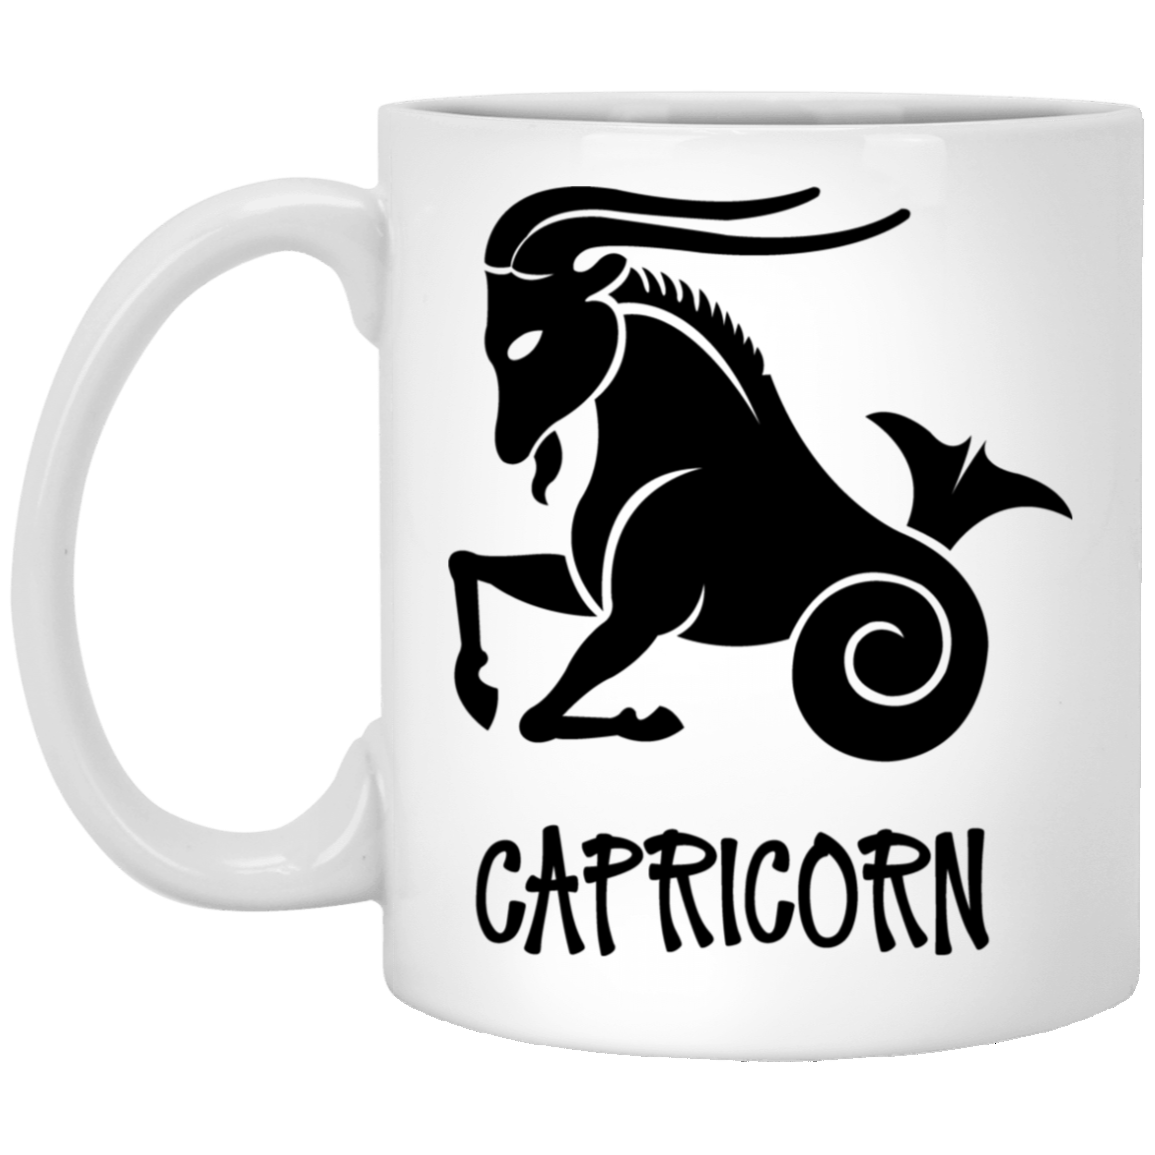 Capricorn Astrological Sign Mug 11 oz